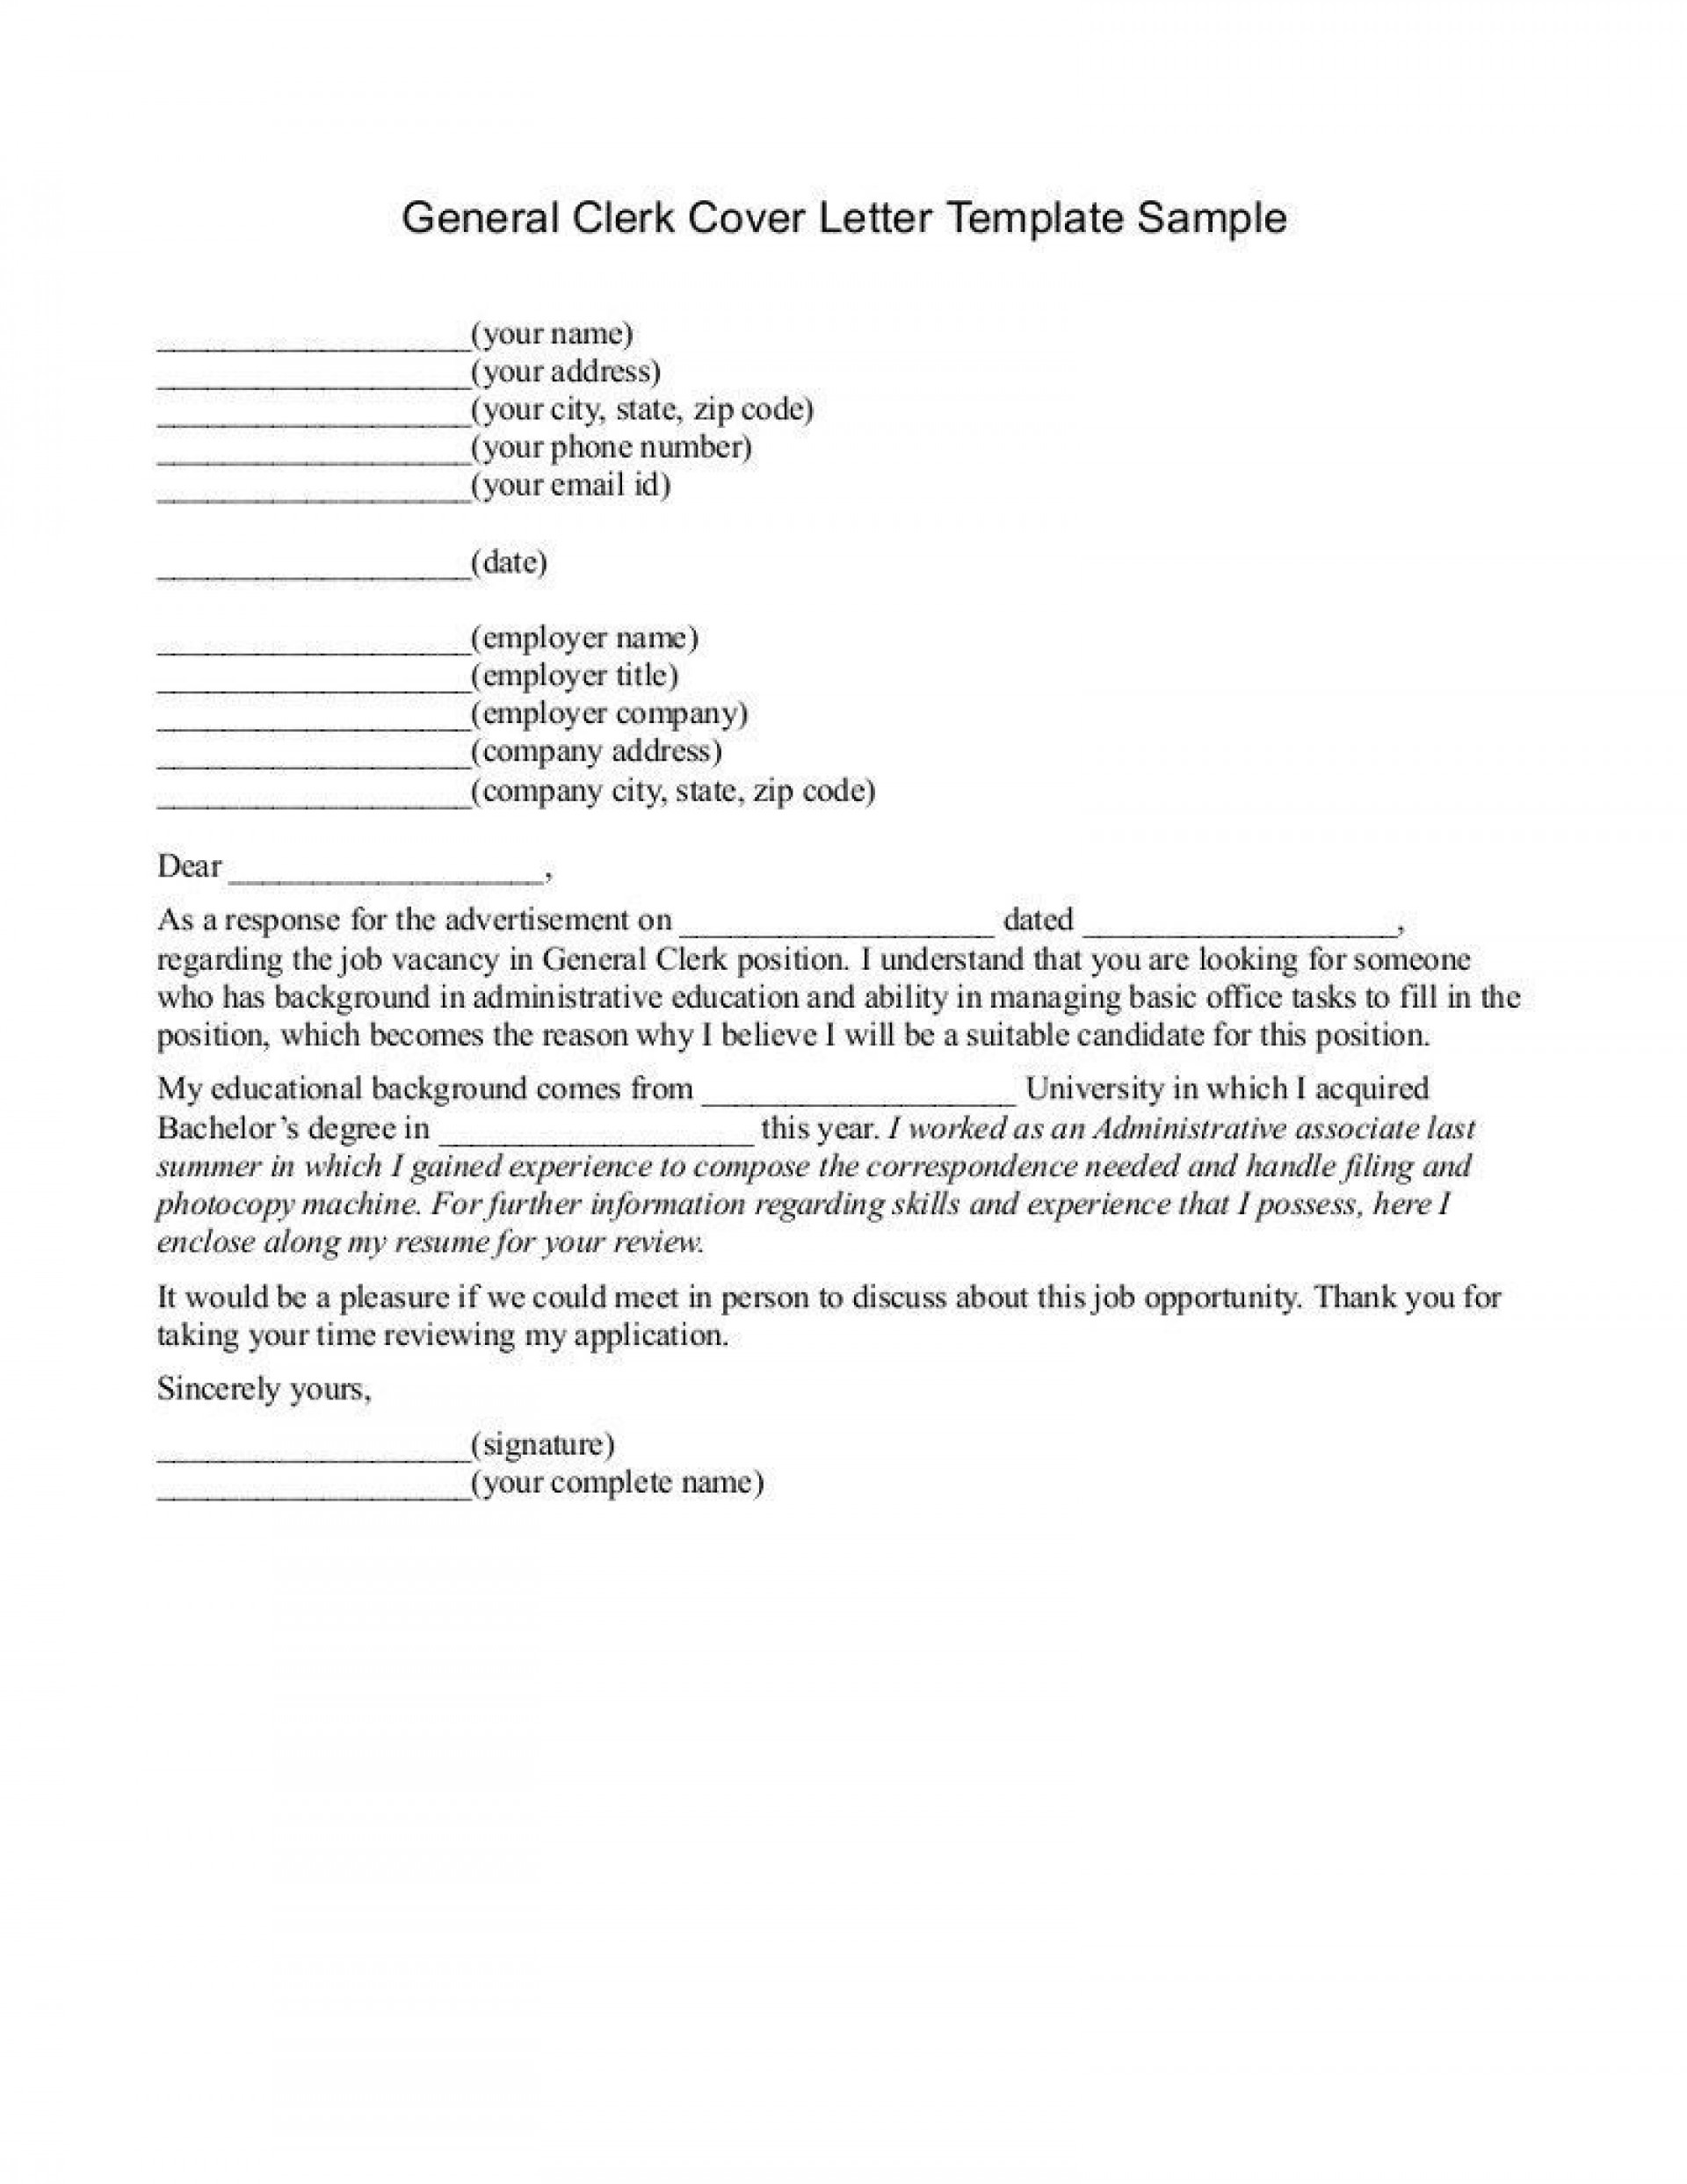 Sample Generic Cover Letter from www.addictionary.org